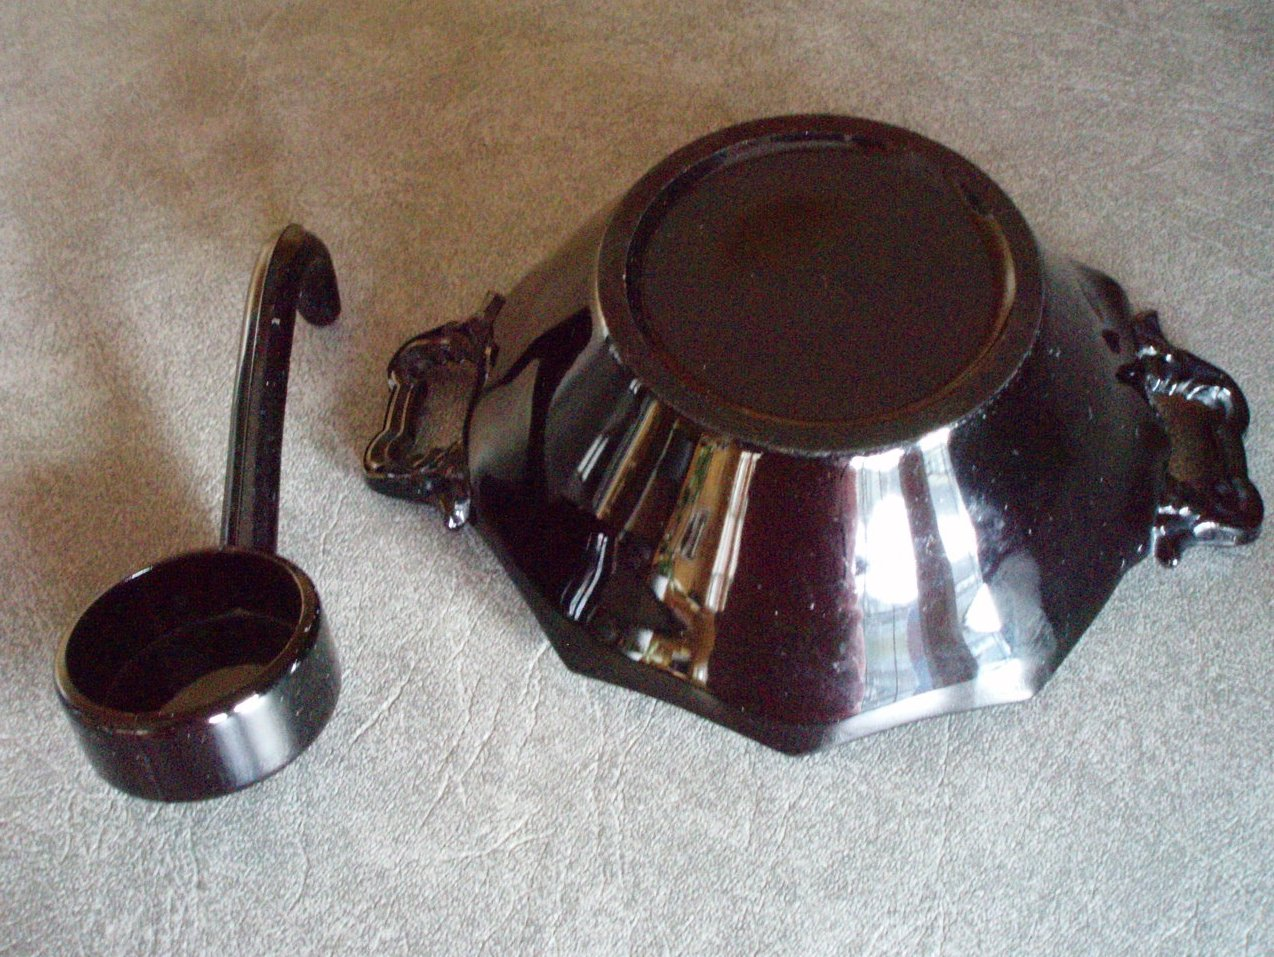 Image 3 of Black Central Glass amethyst 2 pc. condiment ebony dish VTG